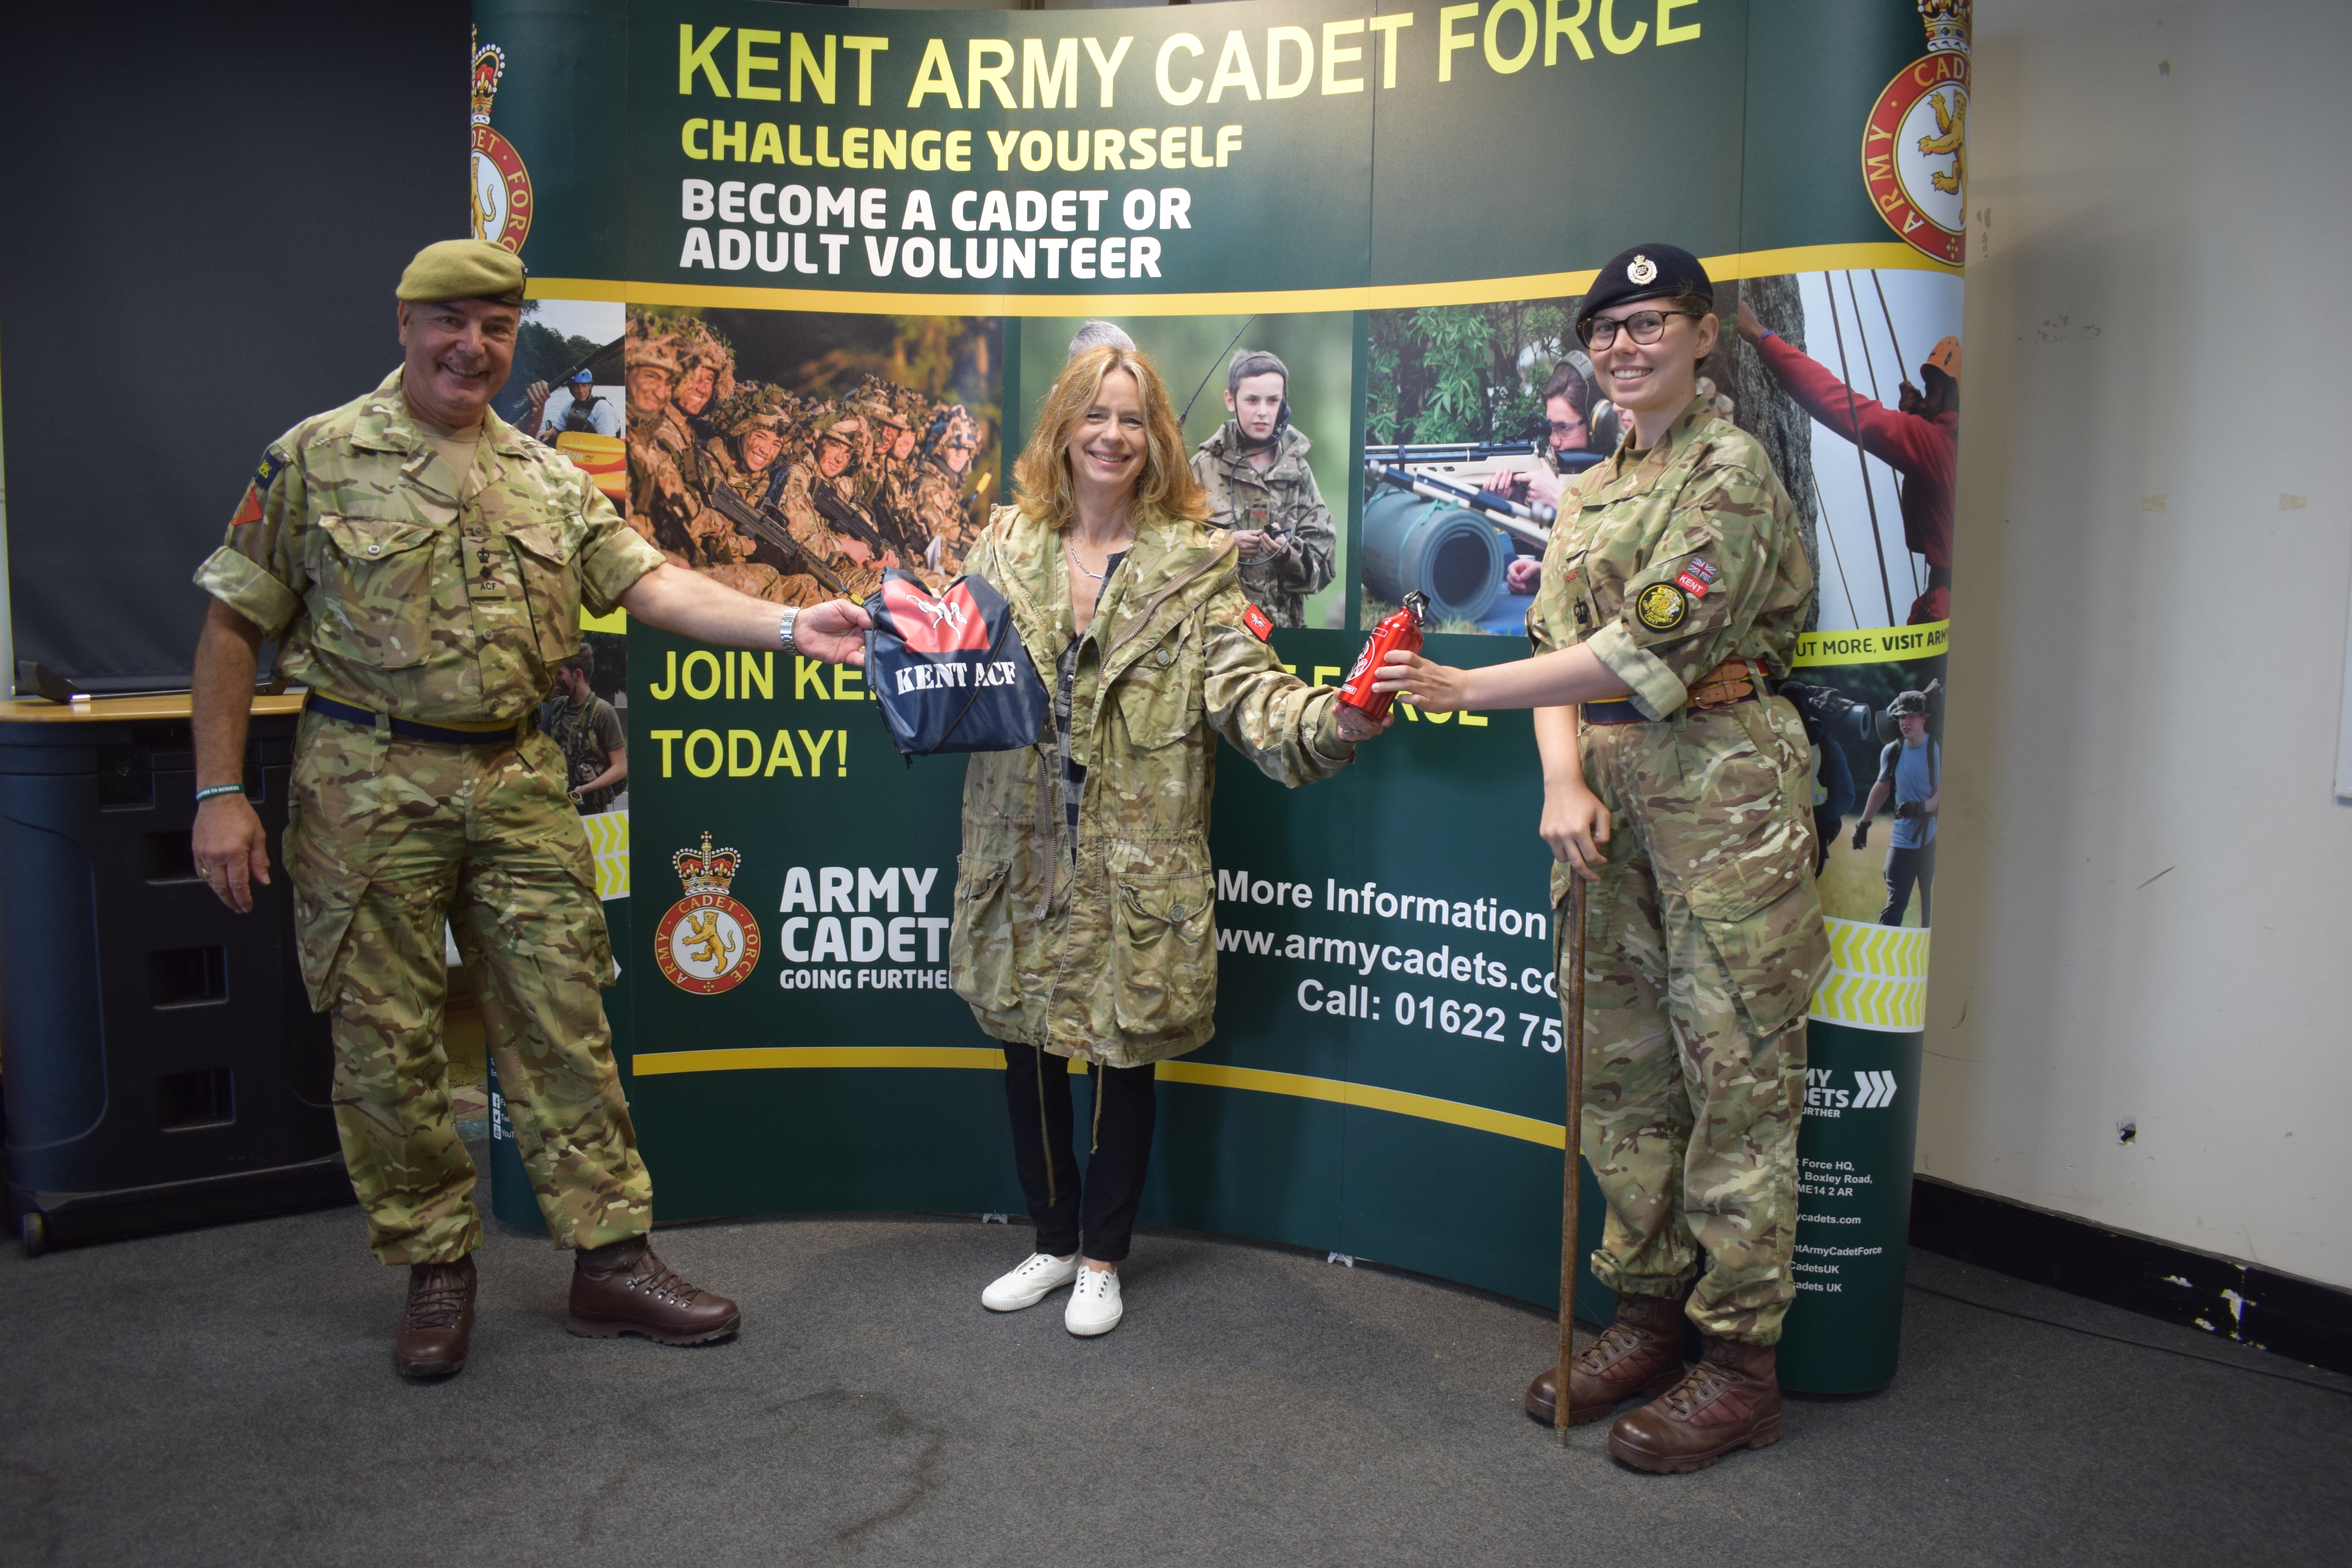 Lt Colonel Simon Dean, Lady Colgrain and the Lord Lt's Cadet